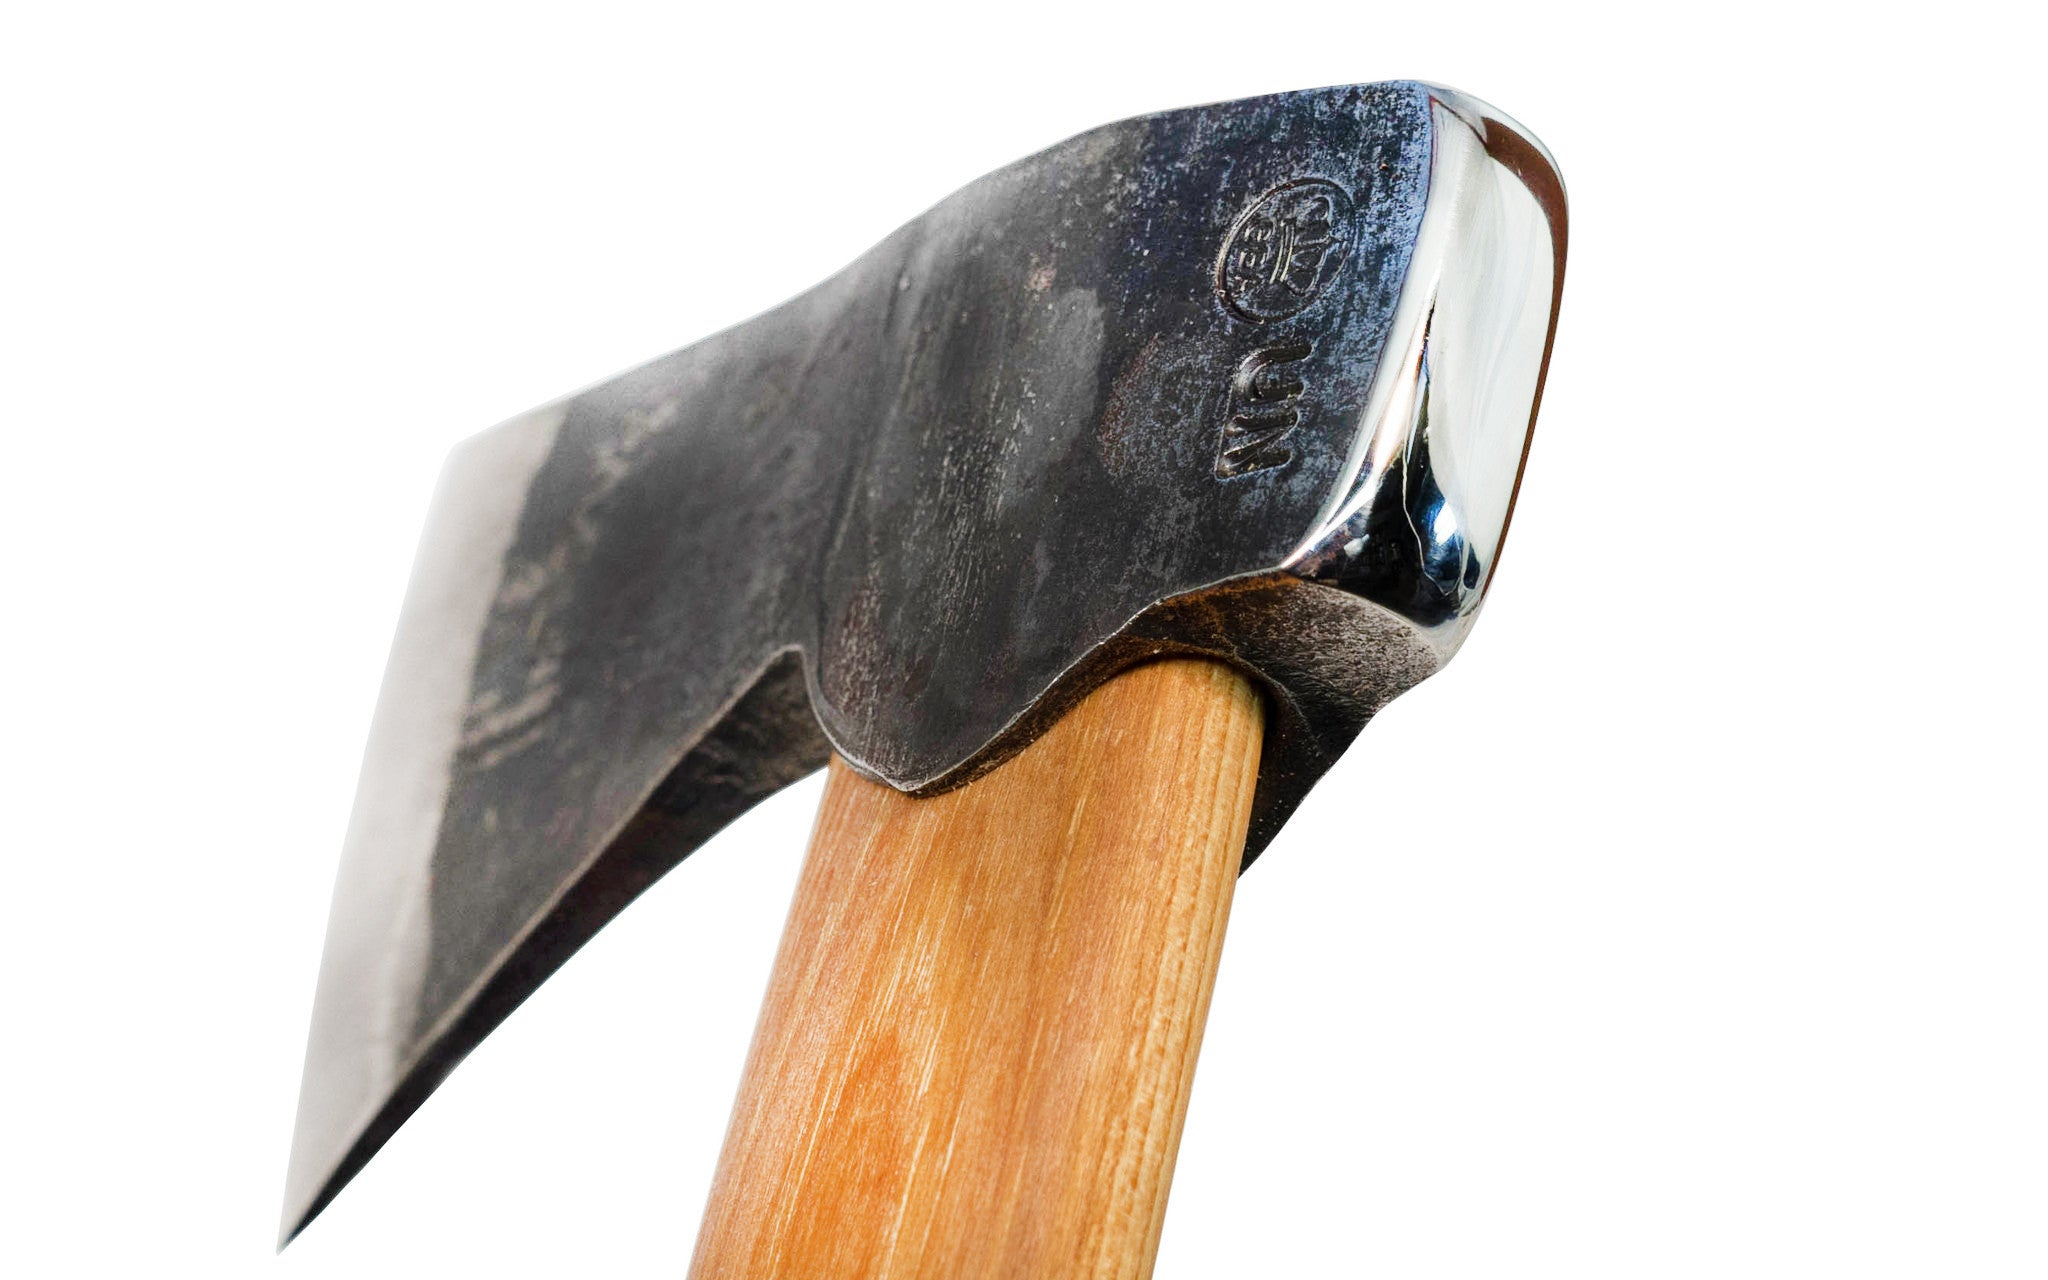 Gransfors Bruk Hunter's Axe No. 418 - Special